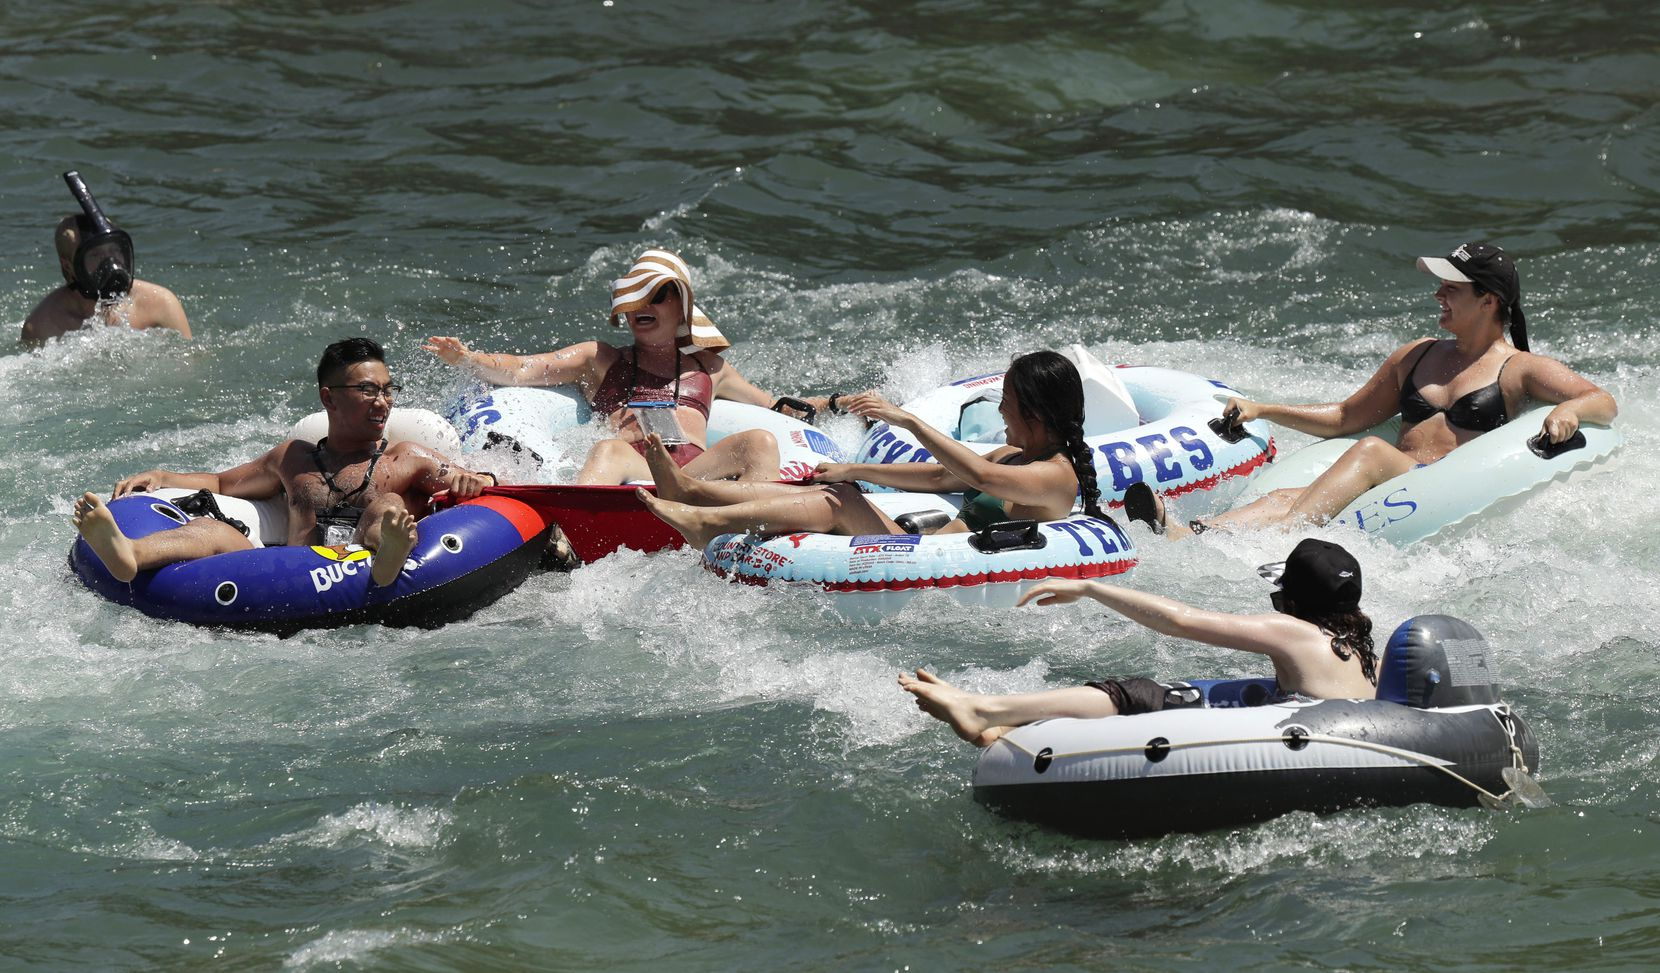 Tubers float the Comal River in New Braunfels Wednesday. As parks reopen following closures due to the COVID-19 pandemic, many Texans are returning to the outdoors.